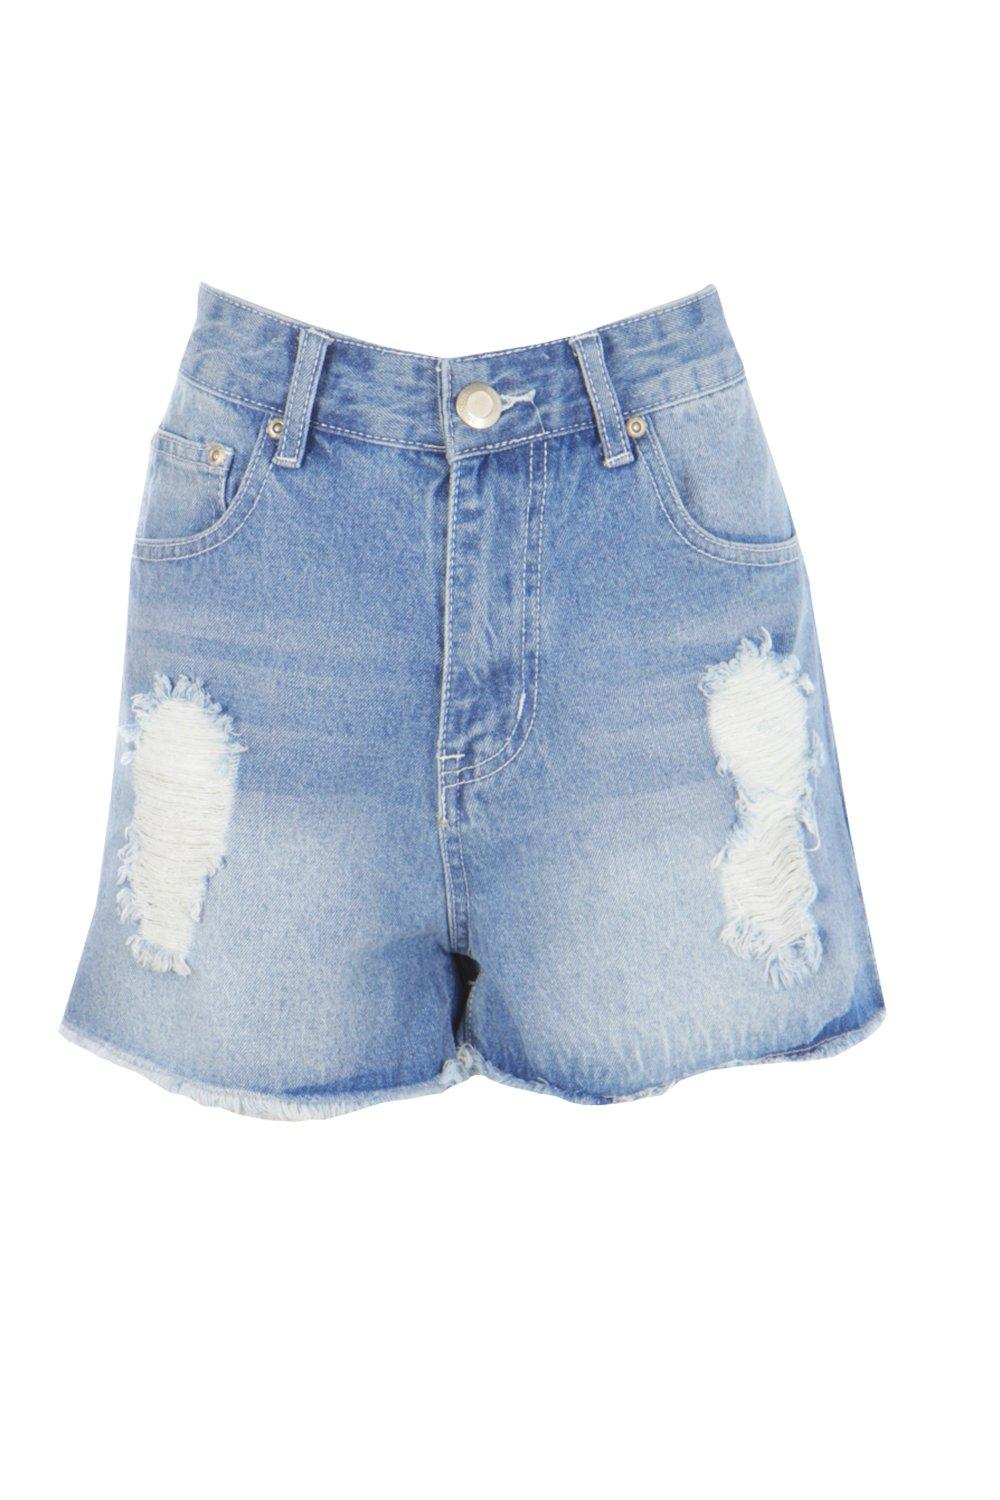 Olivia High Waisted Distressed Denim Mom Shorts